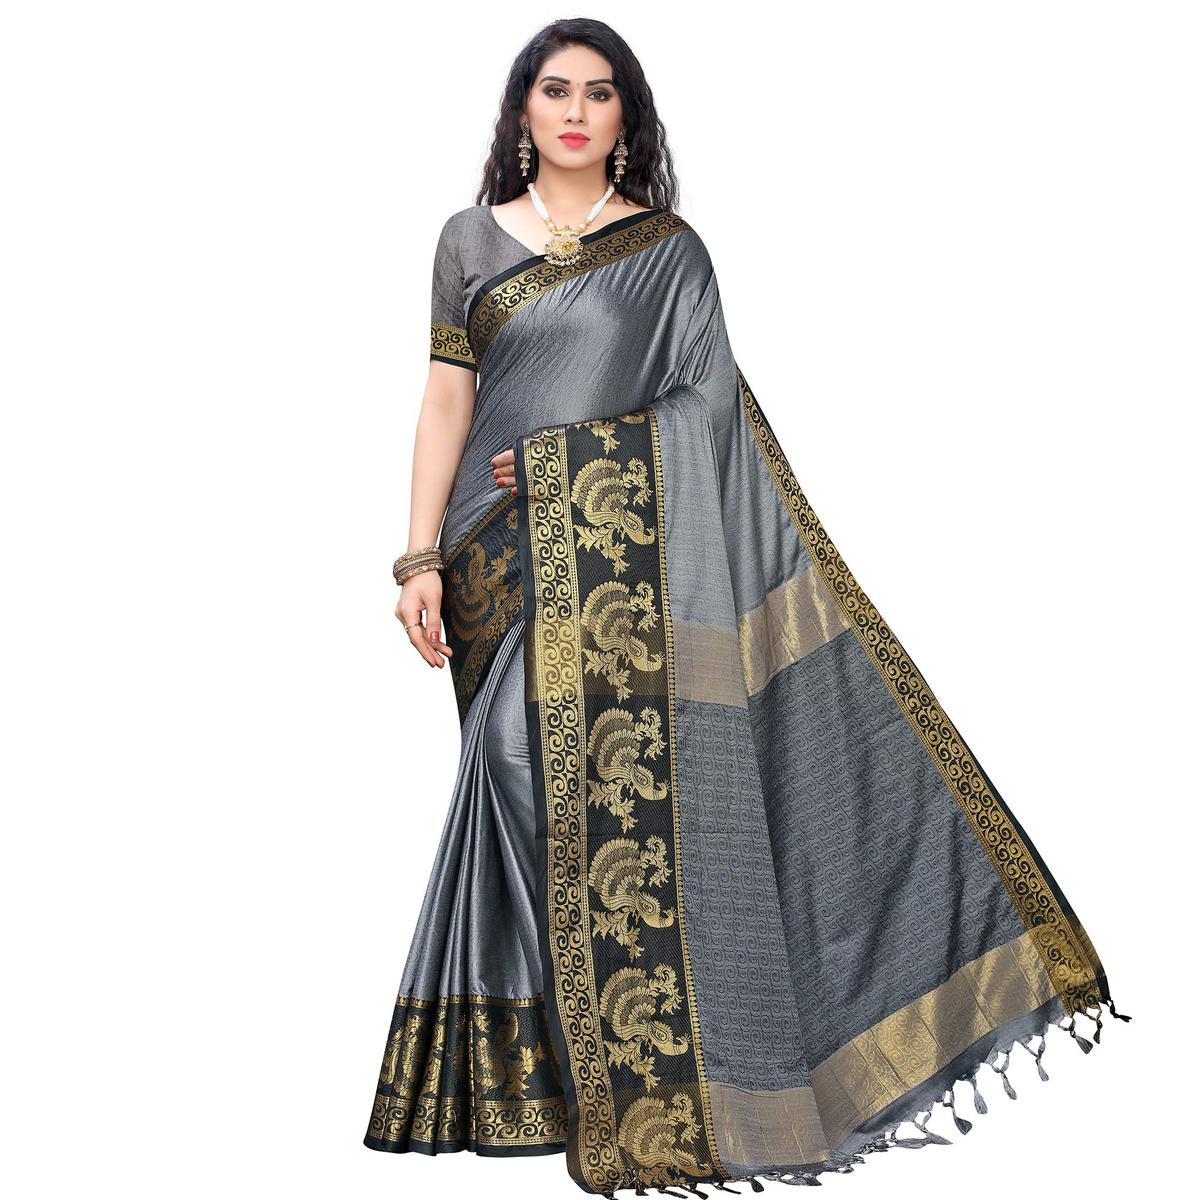 Alluring Grey Colored Festive Wear Woven Banarasi Silk Saree With Tassels